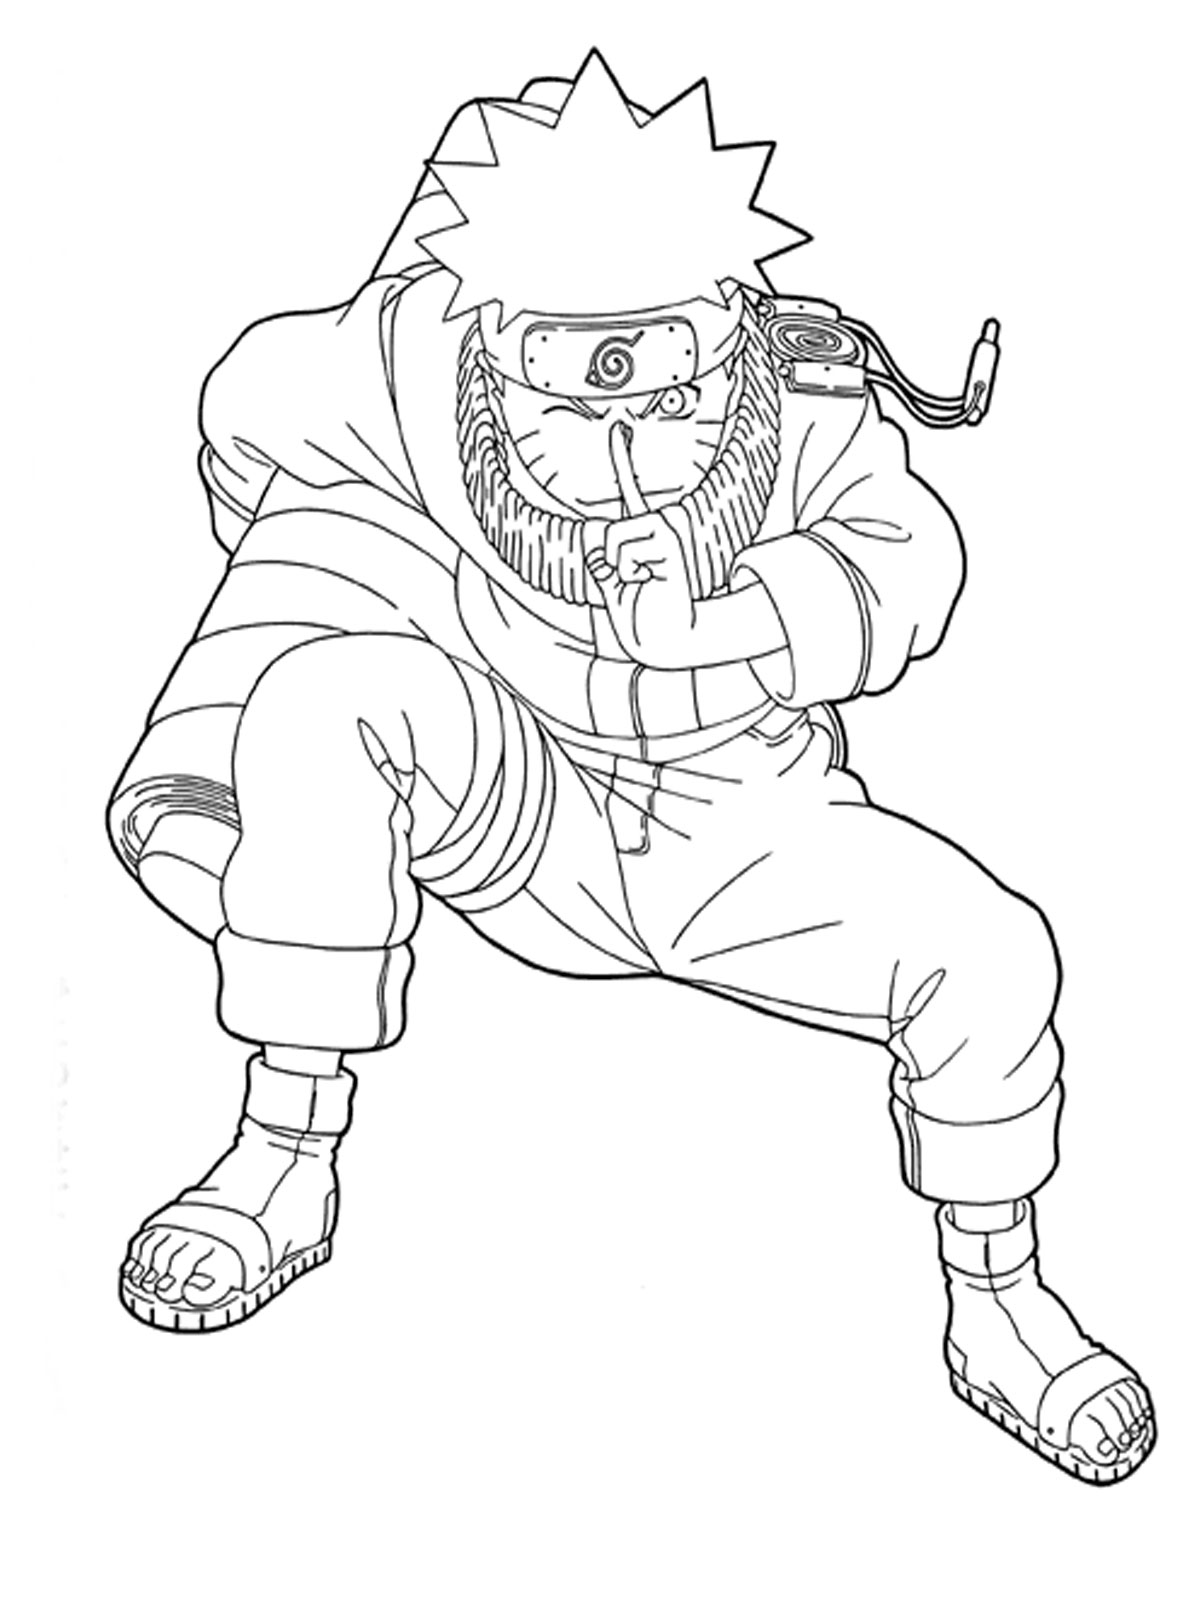 coloring pages of naruto - photo#27